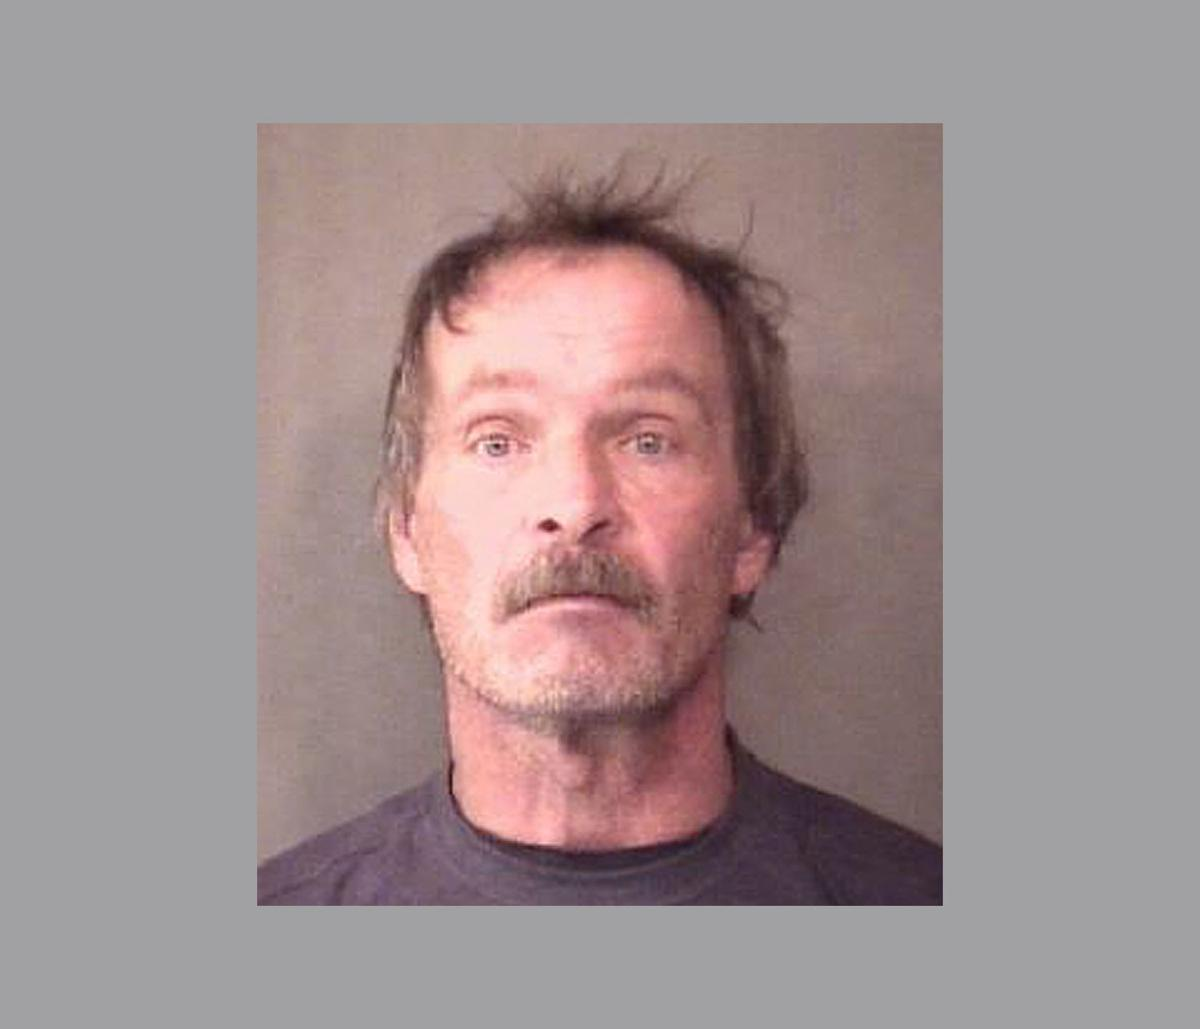 Valpo man accused of following a woman for more than 65 miles, charged with stalking, pot possession